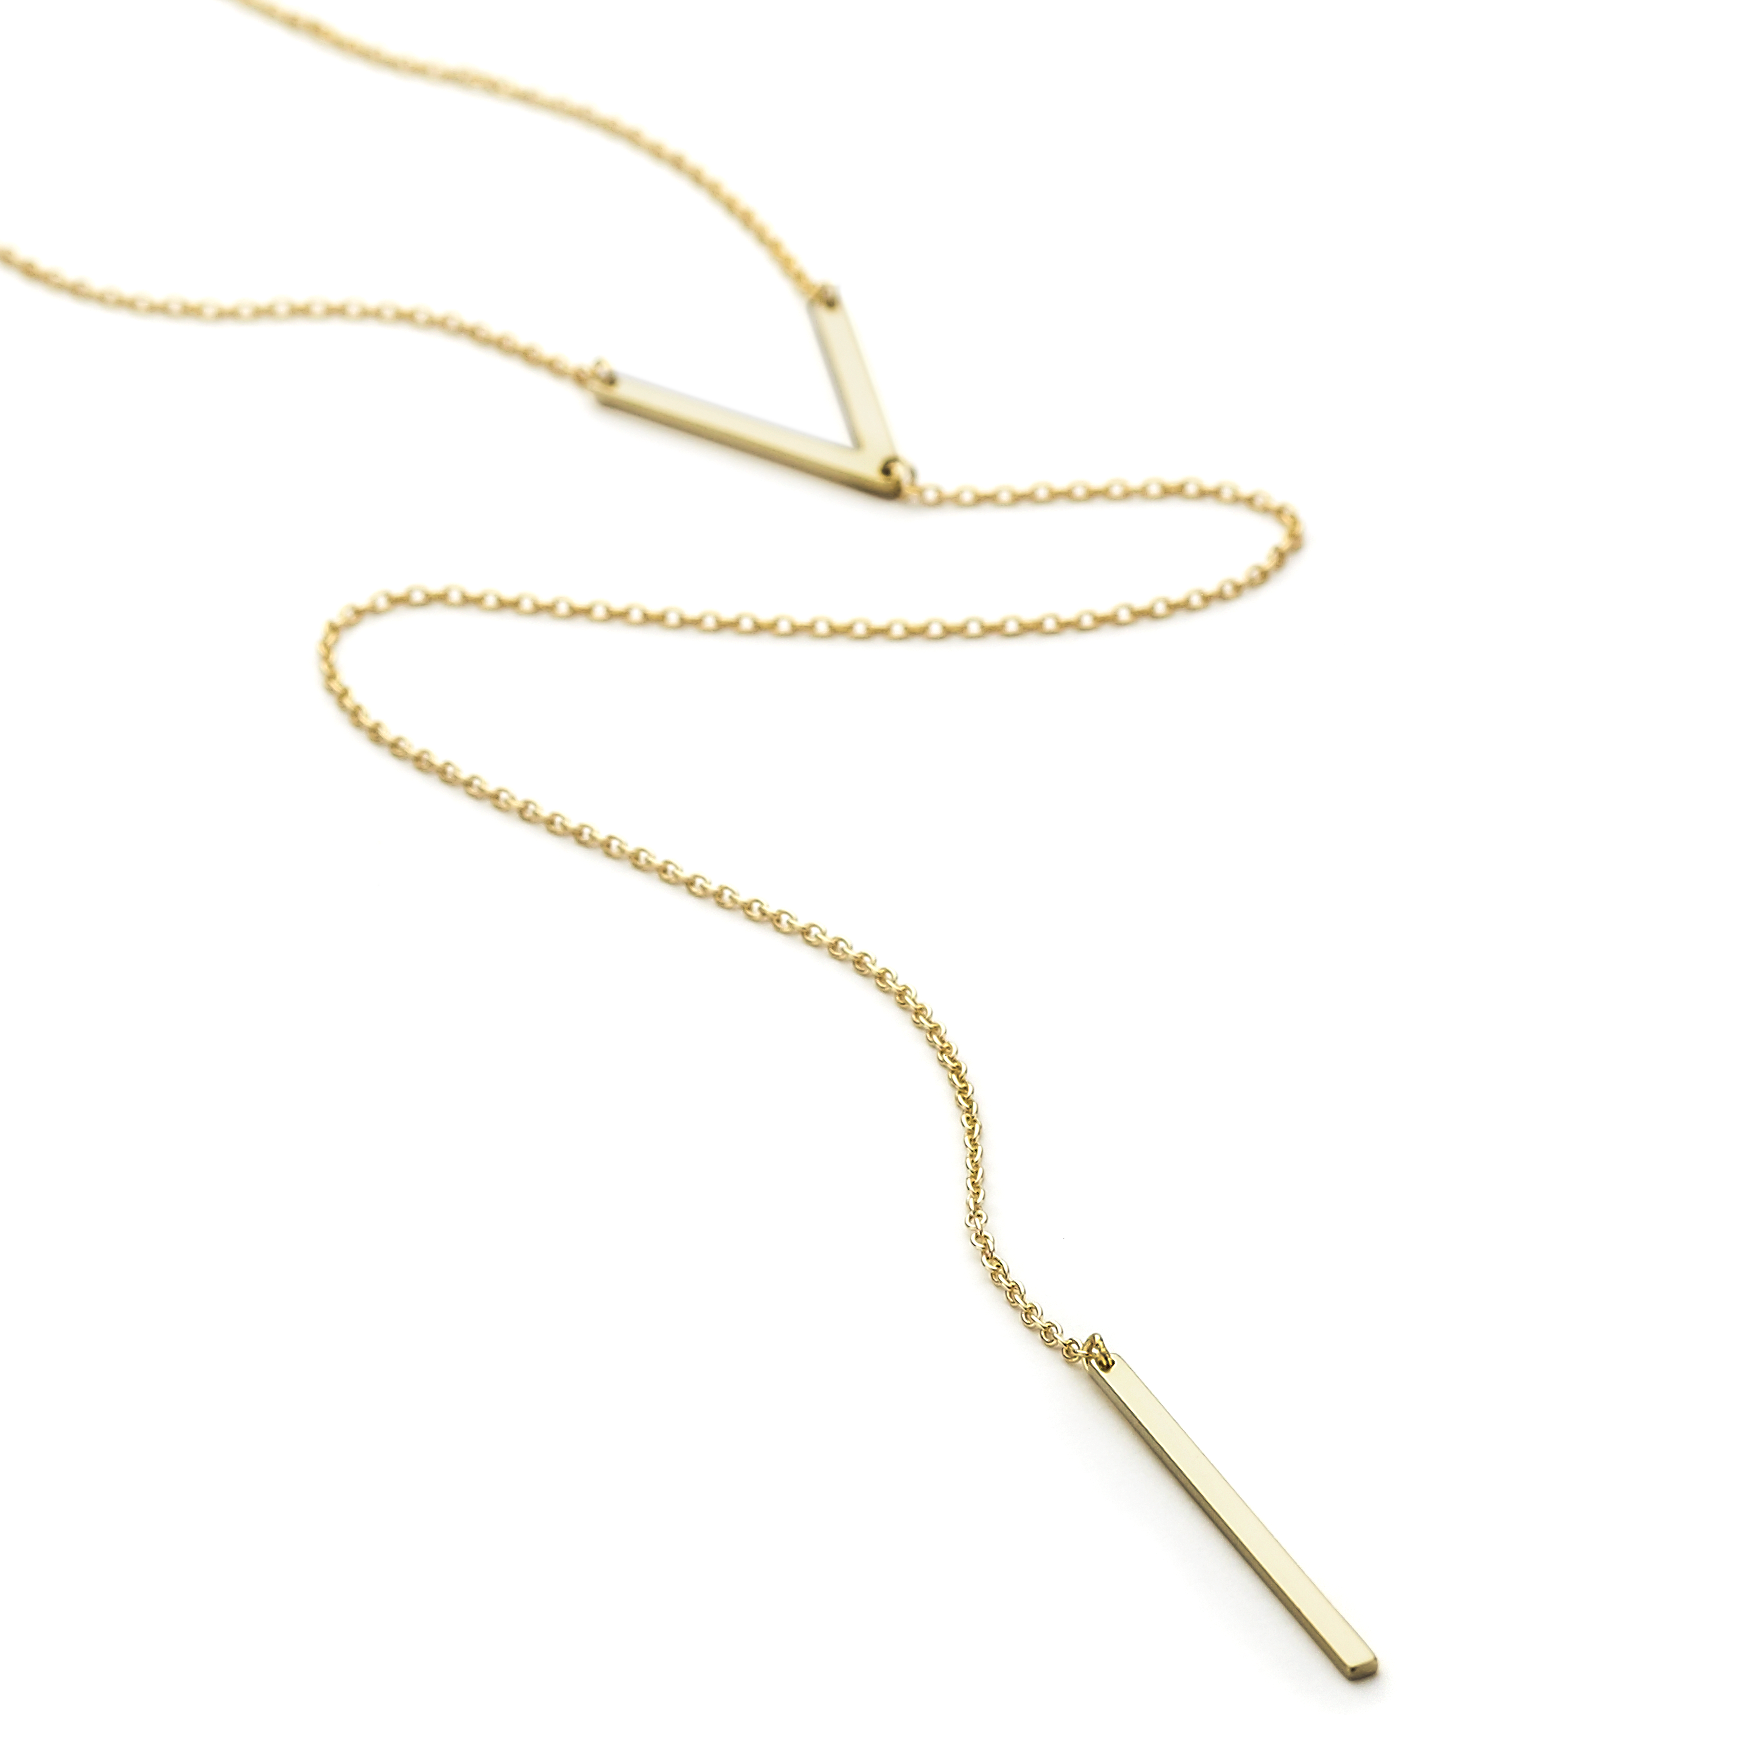 v-allobar-lariat-plain-yellow-gold-vermeil-finish-long-necklace-one-by-one.png